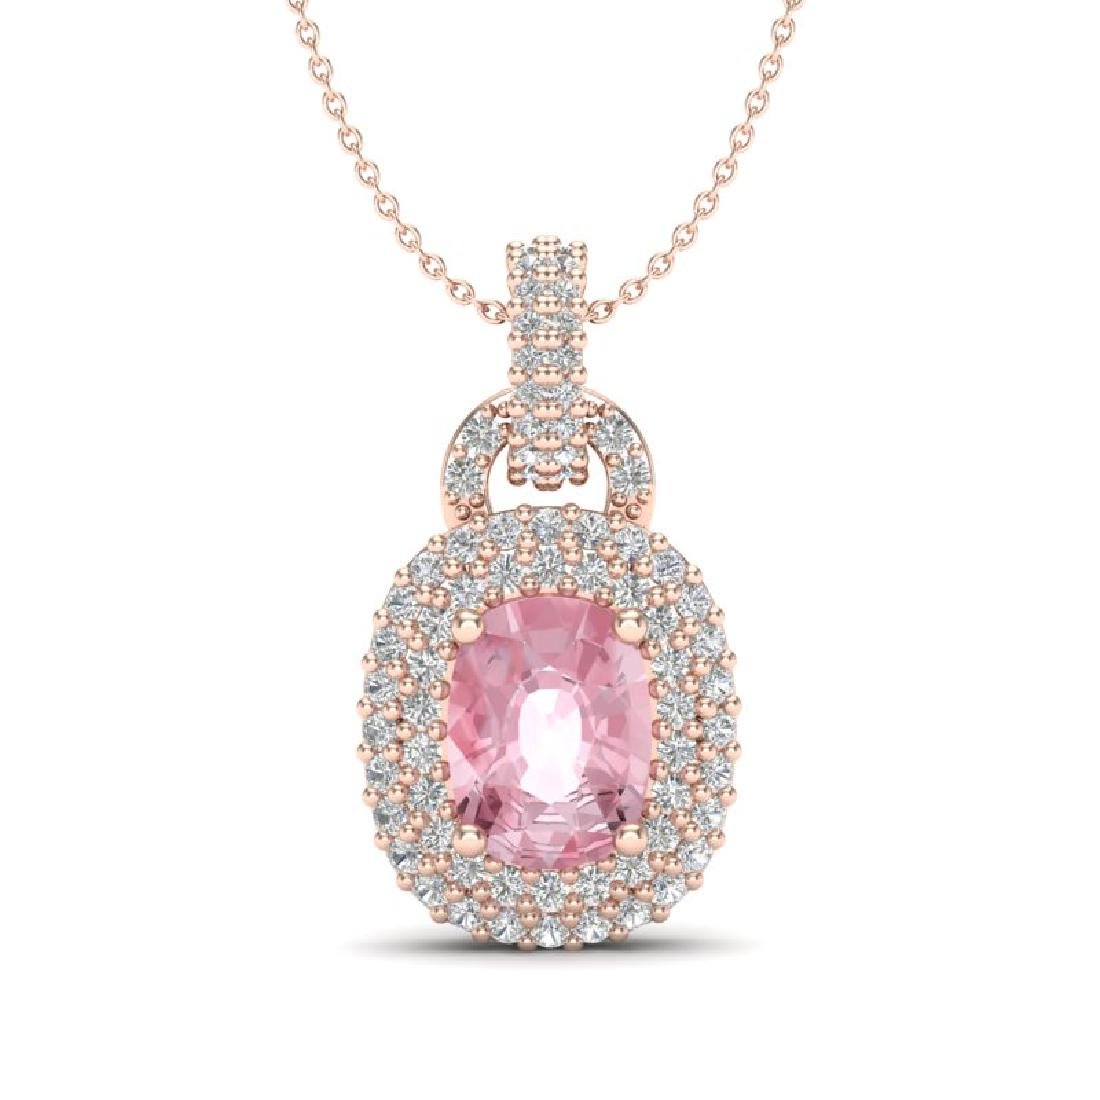 2.50 CTW Morganite & Micro Pave VS/SI Diamond Necklace